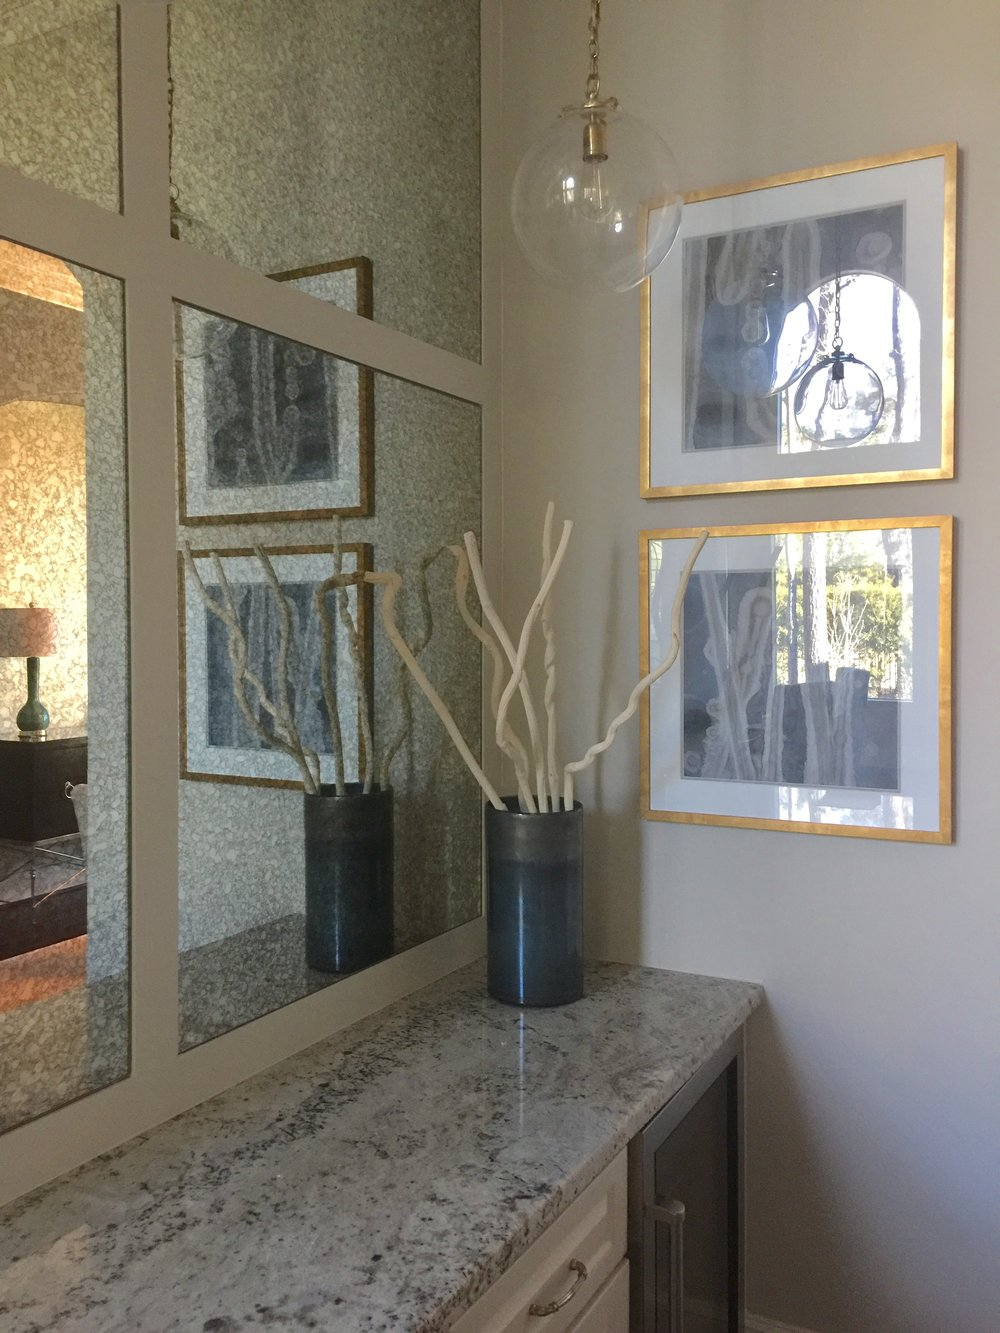 After - Remodeled  bar area with new antique mirrored panels, pendant lighting, and artwork #bar #mirror #paneling #mirrorpanels